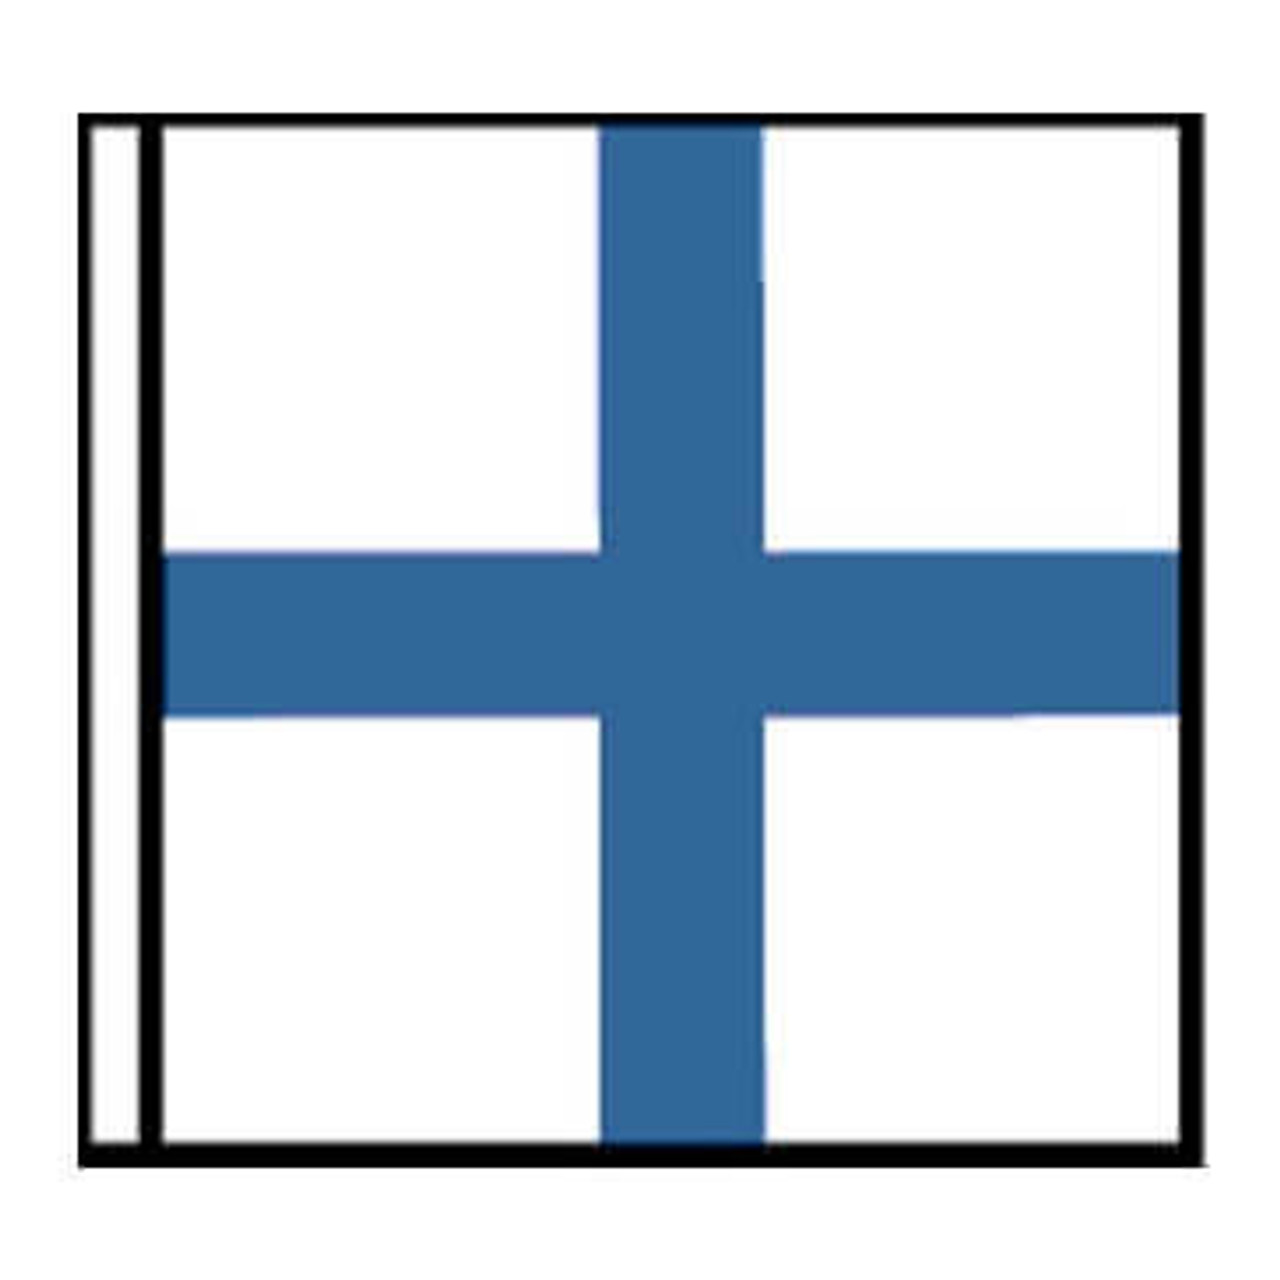 X-Ray Stop your Intention Marine signal flag with white header.  White squared flag with a vertical and horizontal blue line at center.